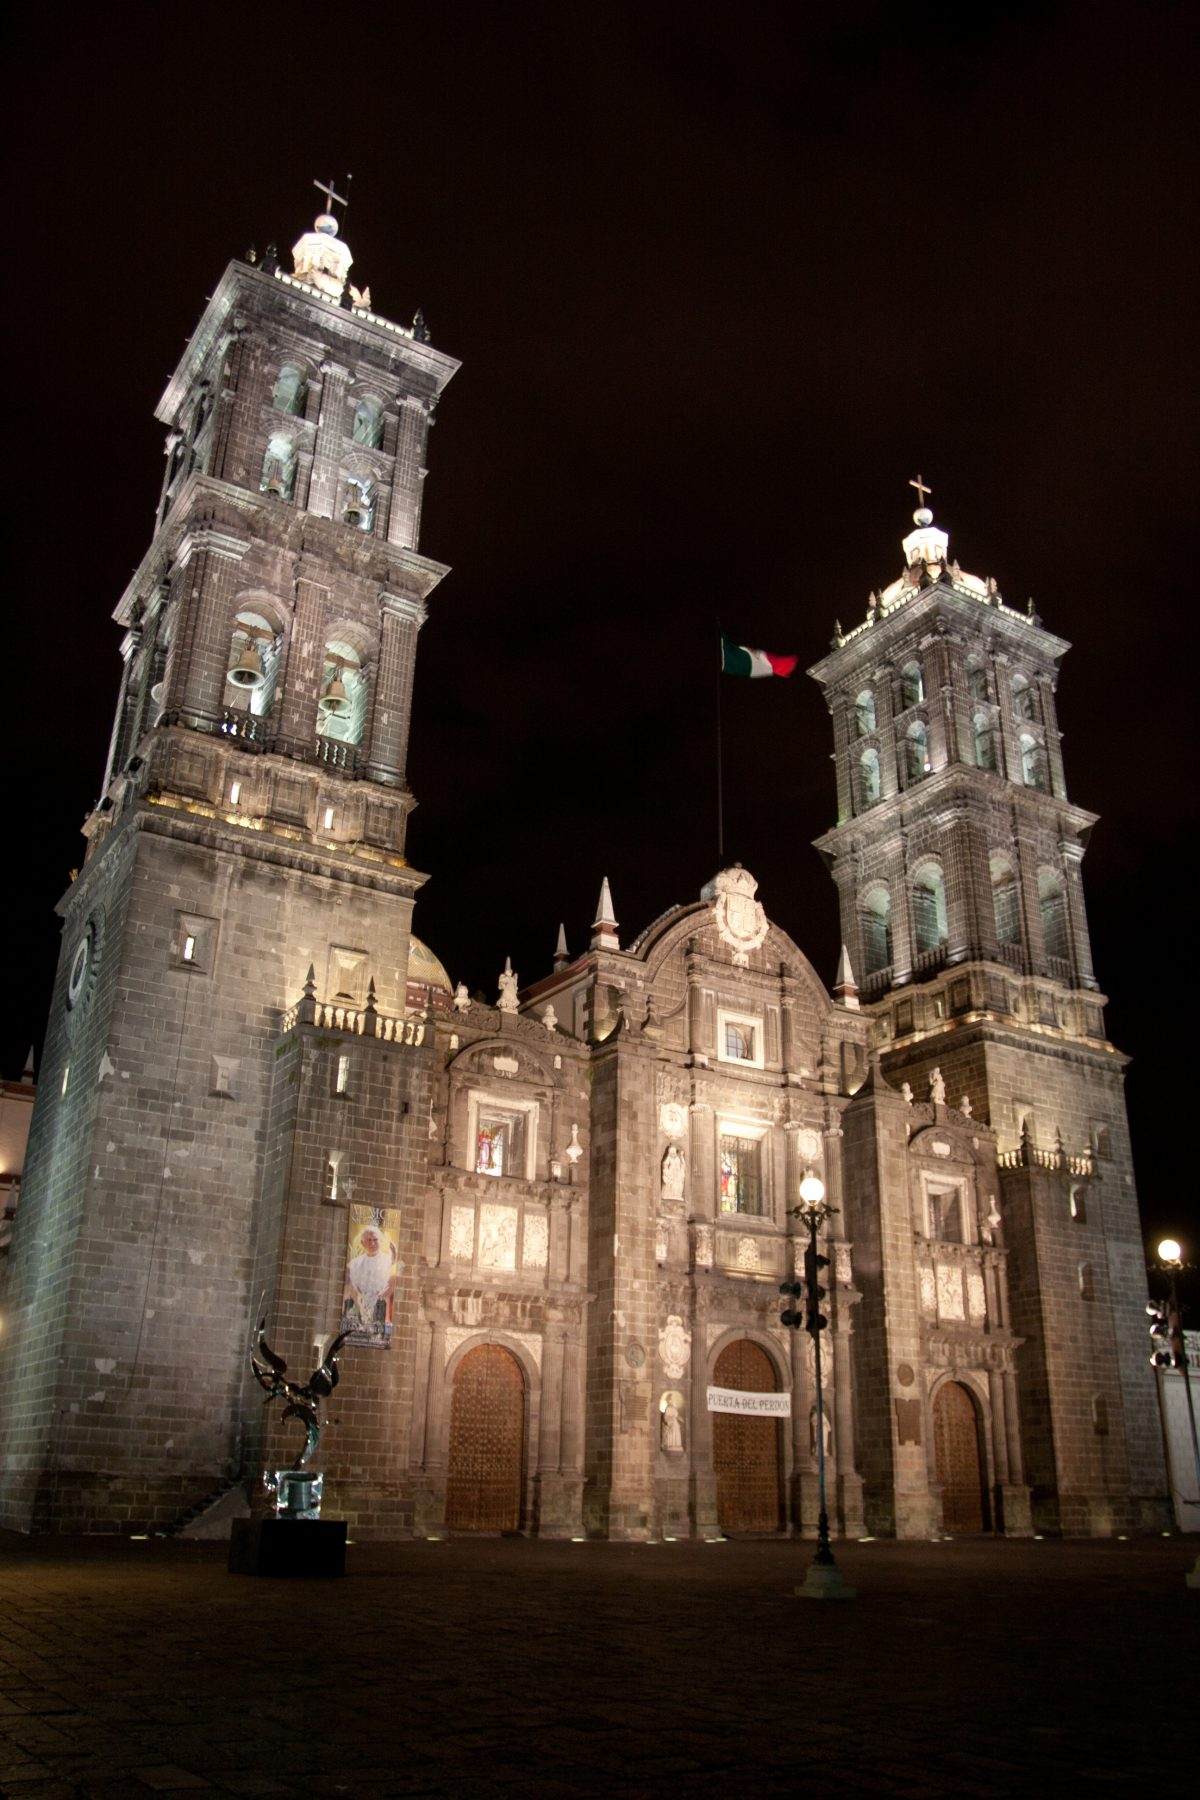 La Básilica Catedral - at night, church, night